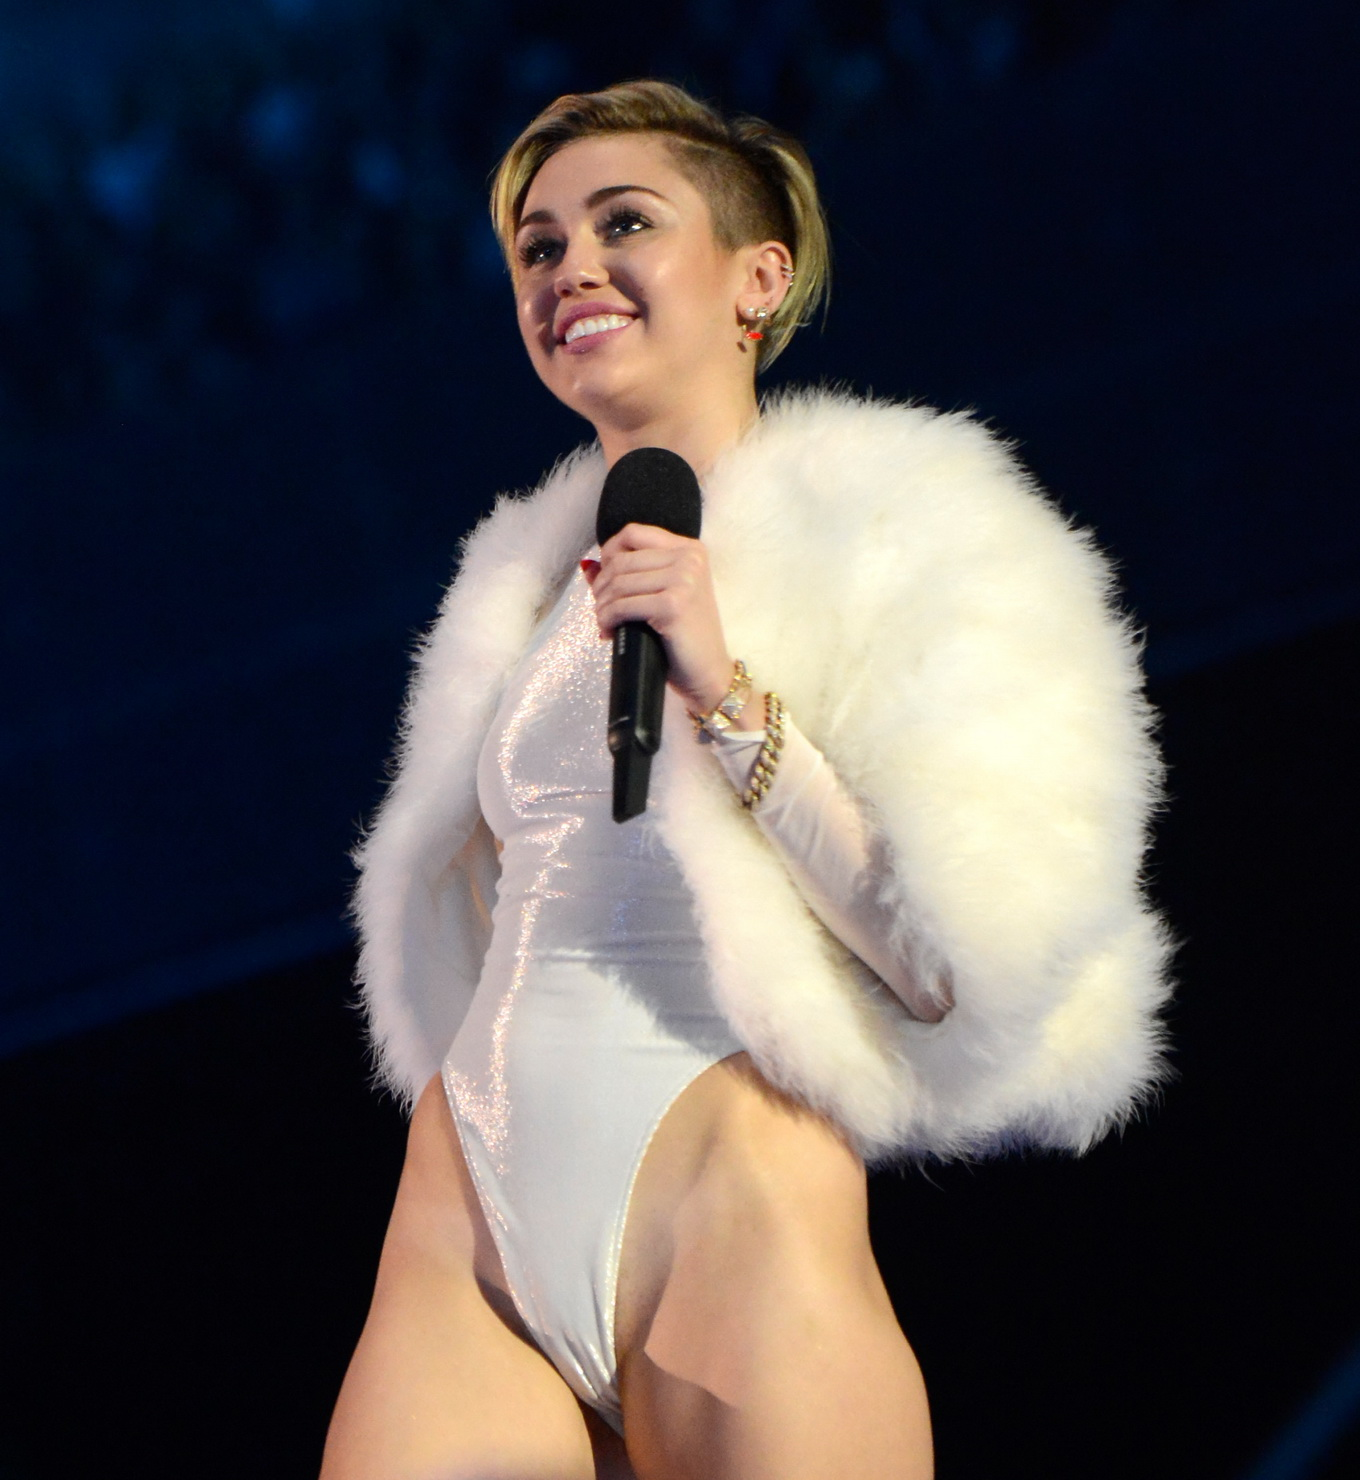 miley cyrus latest naked pics